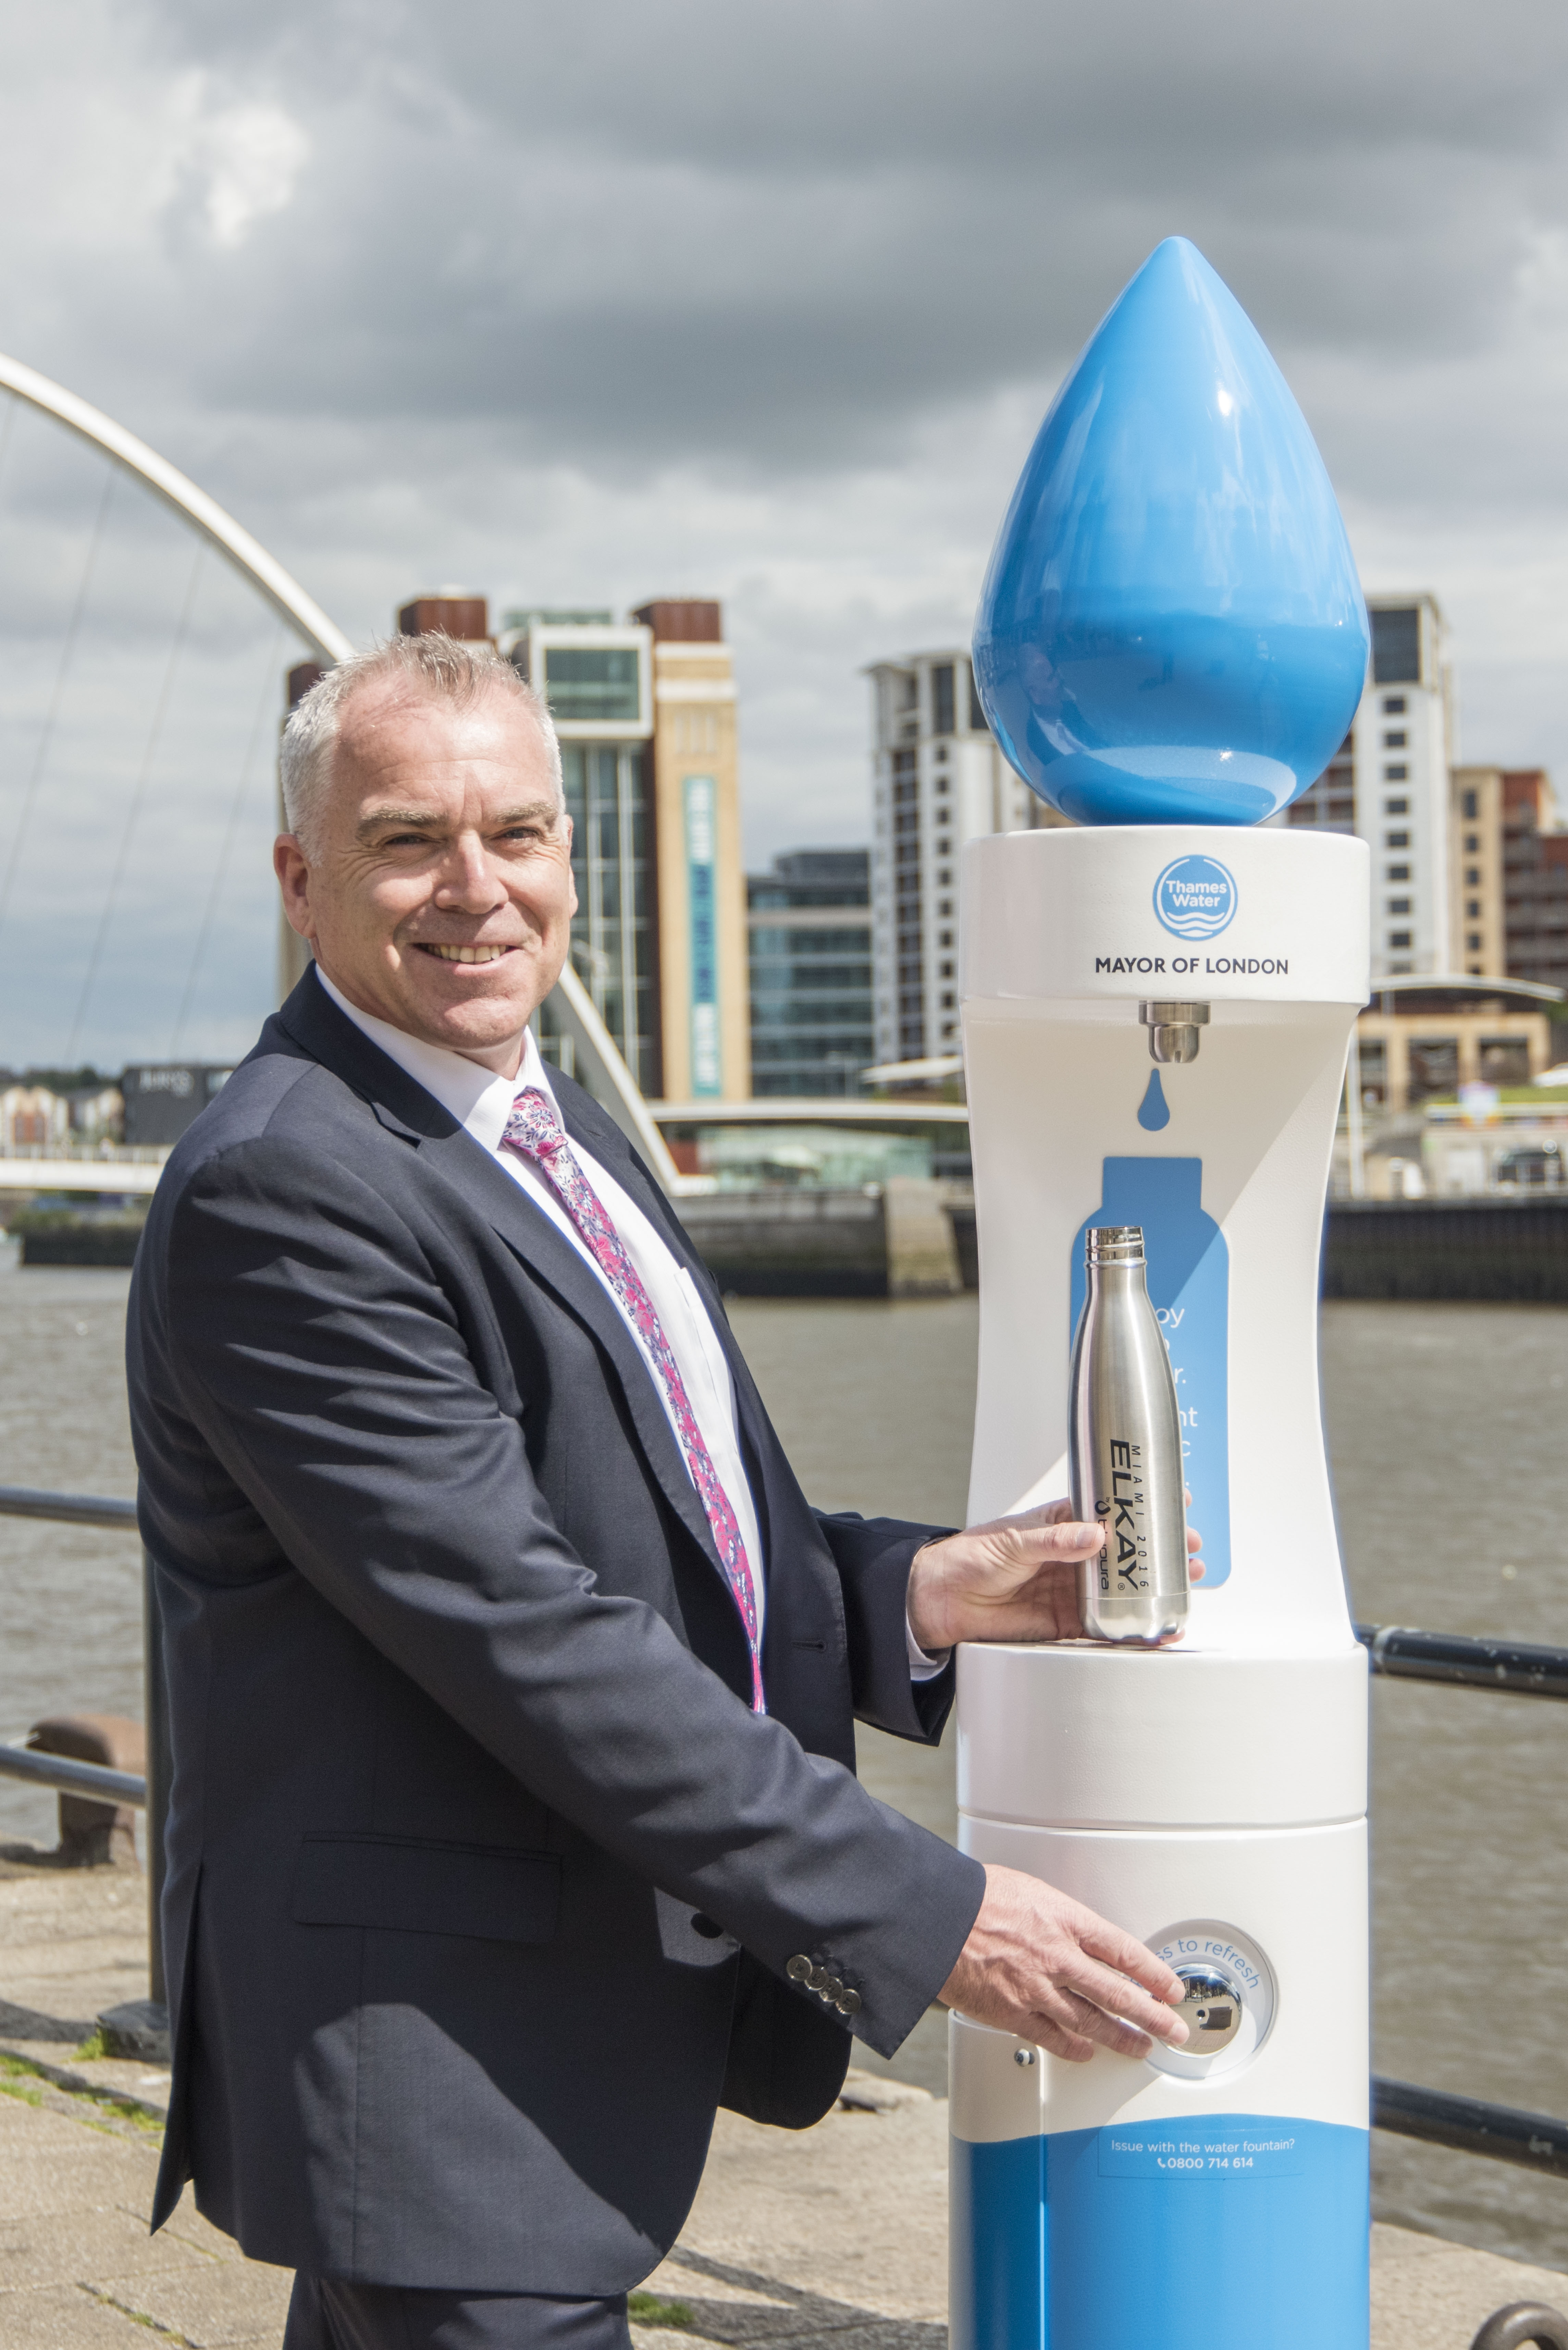 Mike Winter, the managing director at MIW, posing with the new Thames Water bottle filler on the Quayside in Newcastle.